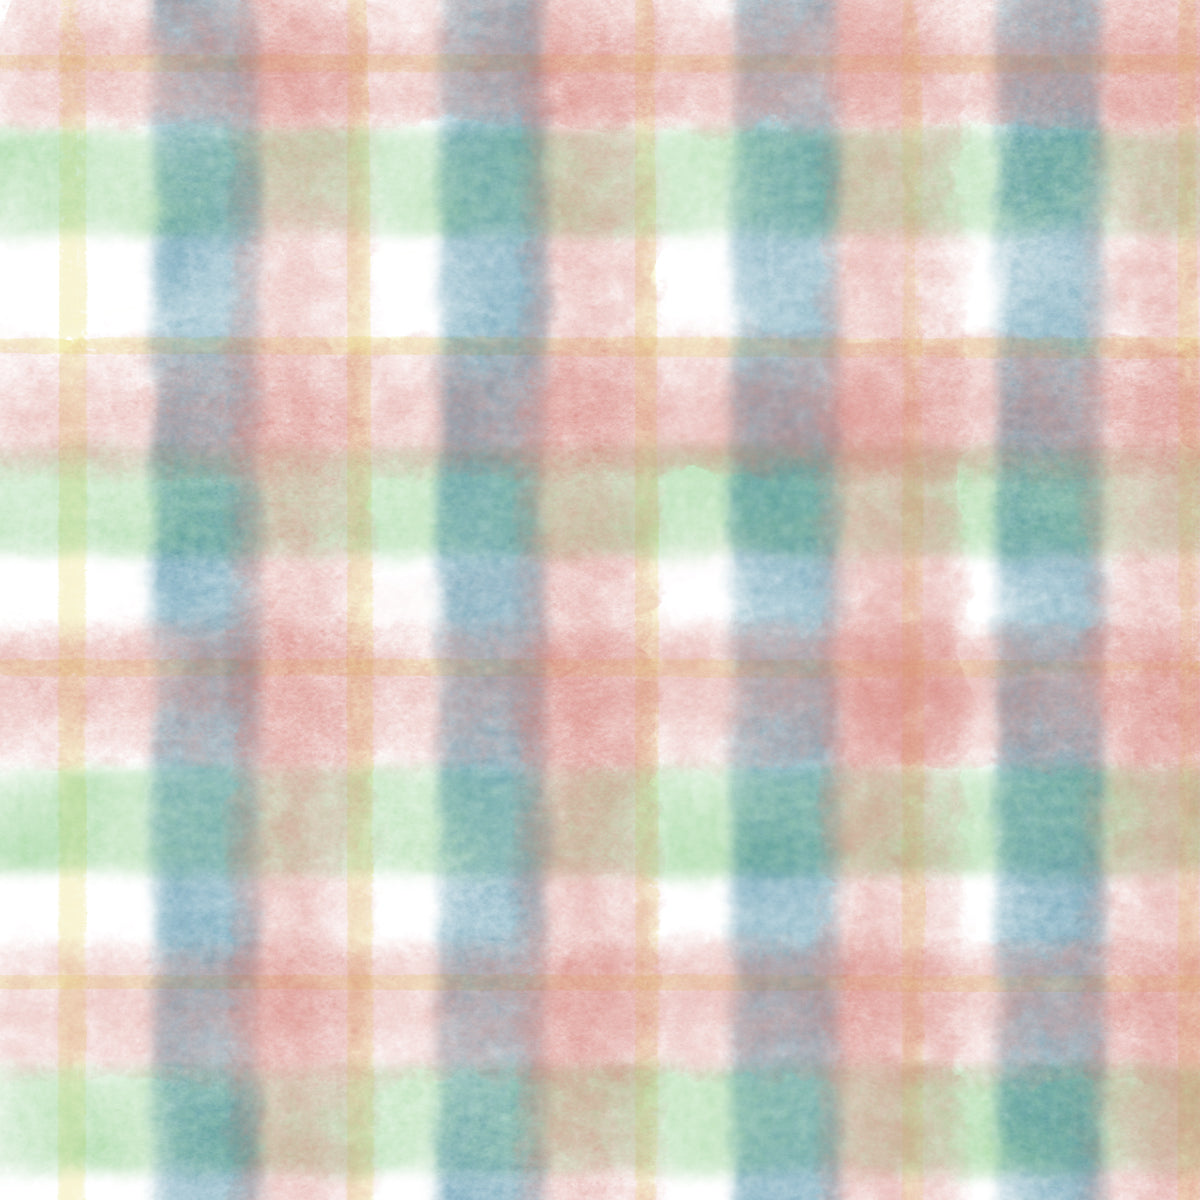 FREE: Picnic Gingham Situation Phone Wallpaper